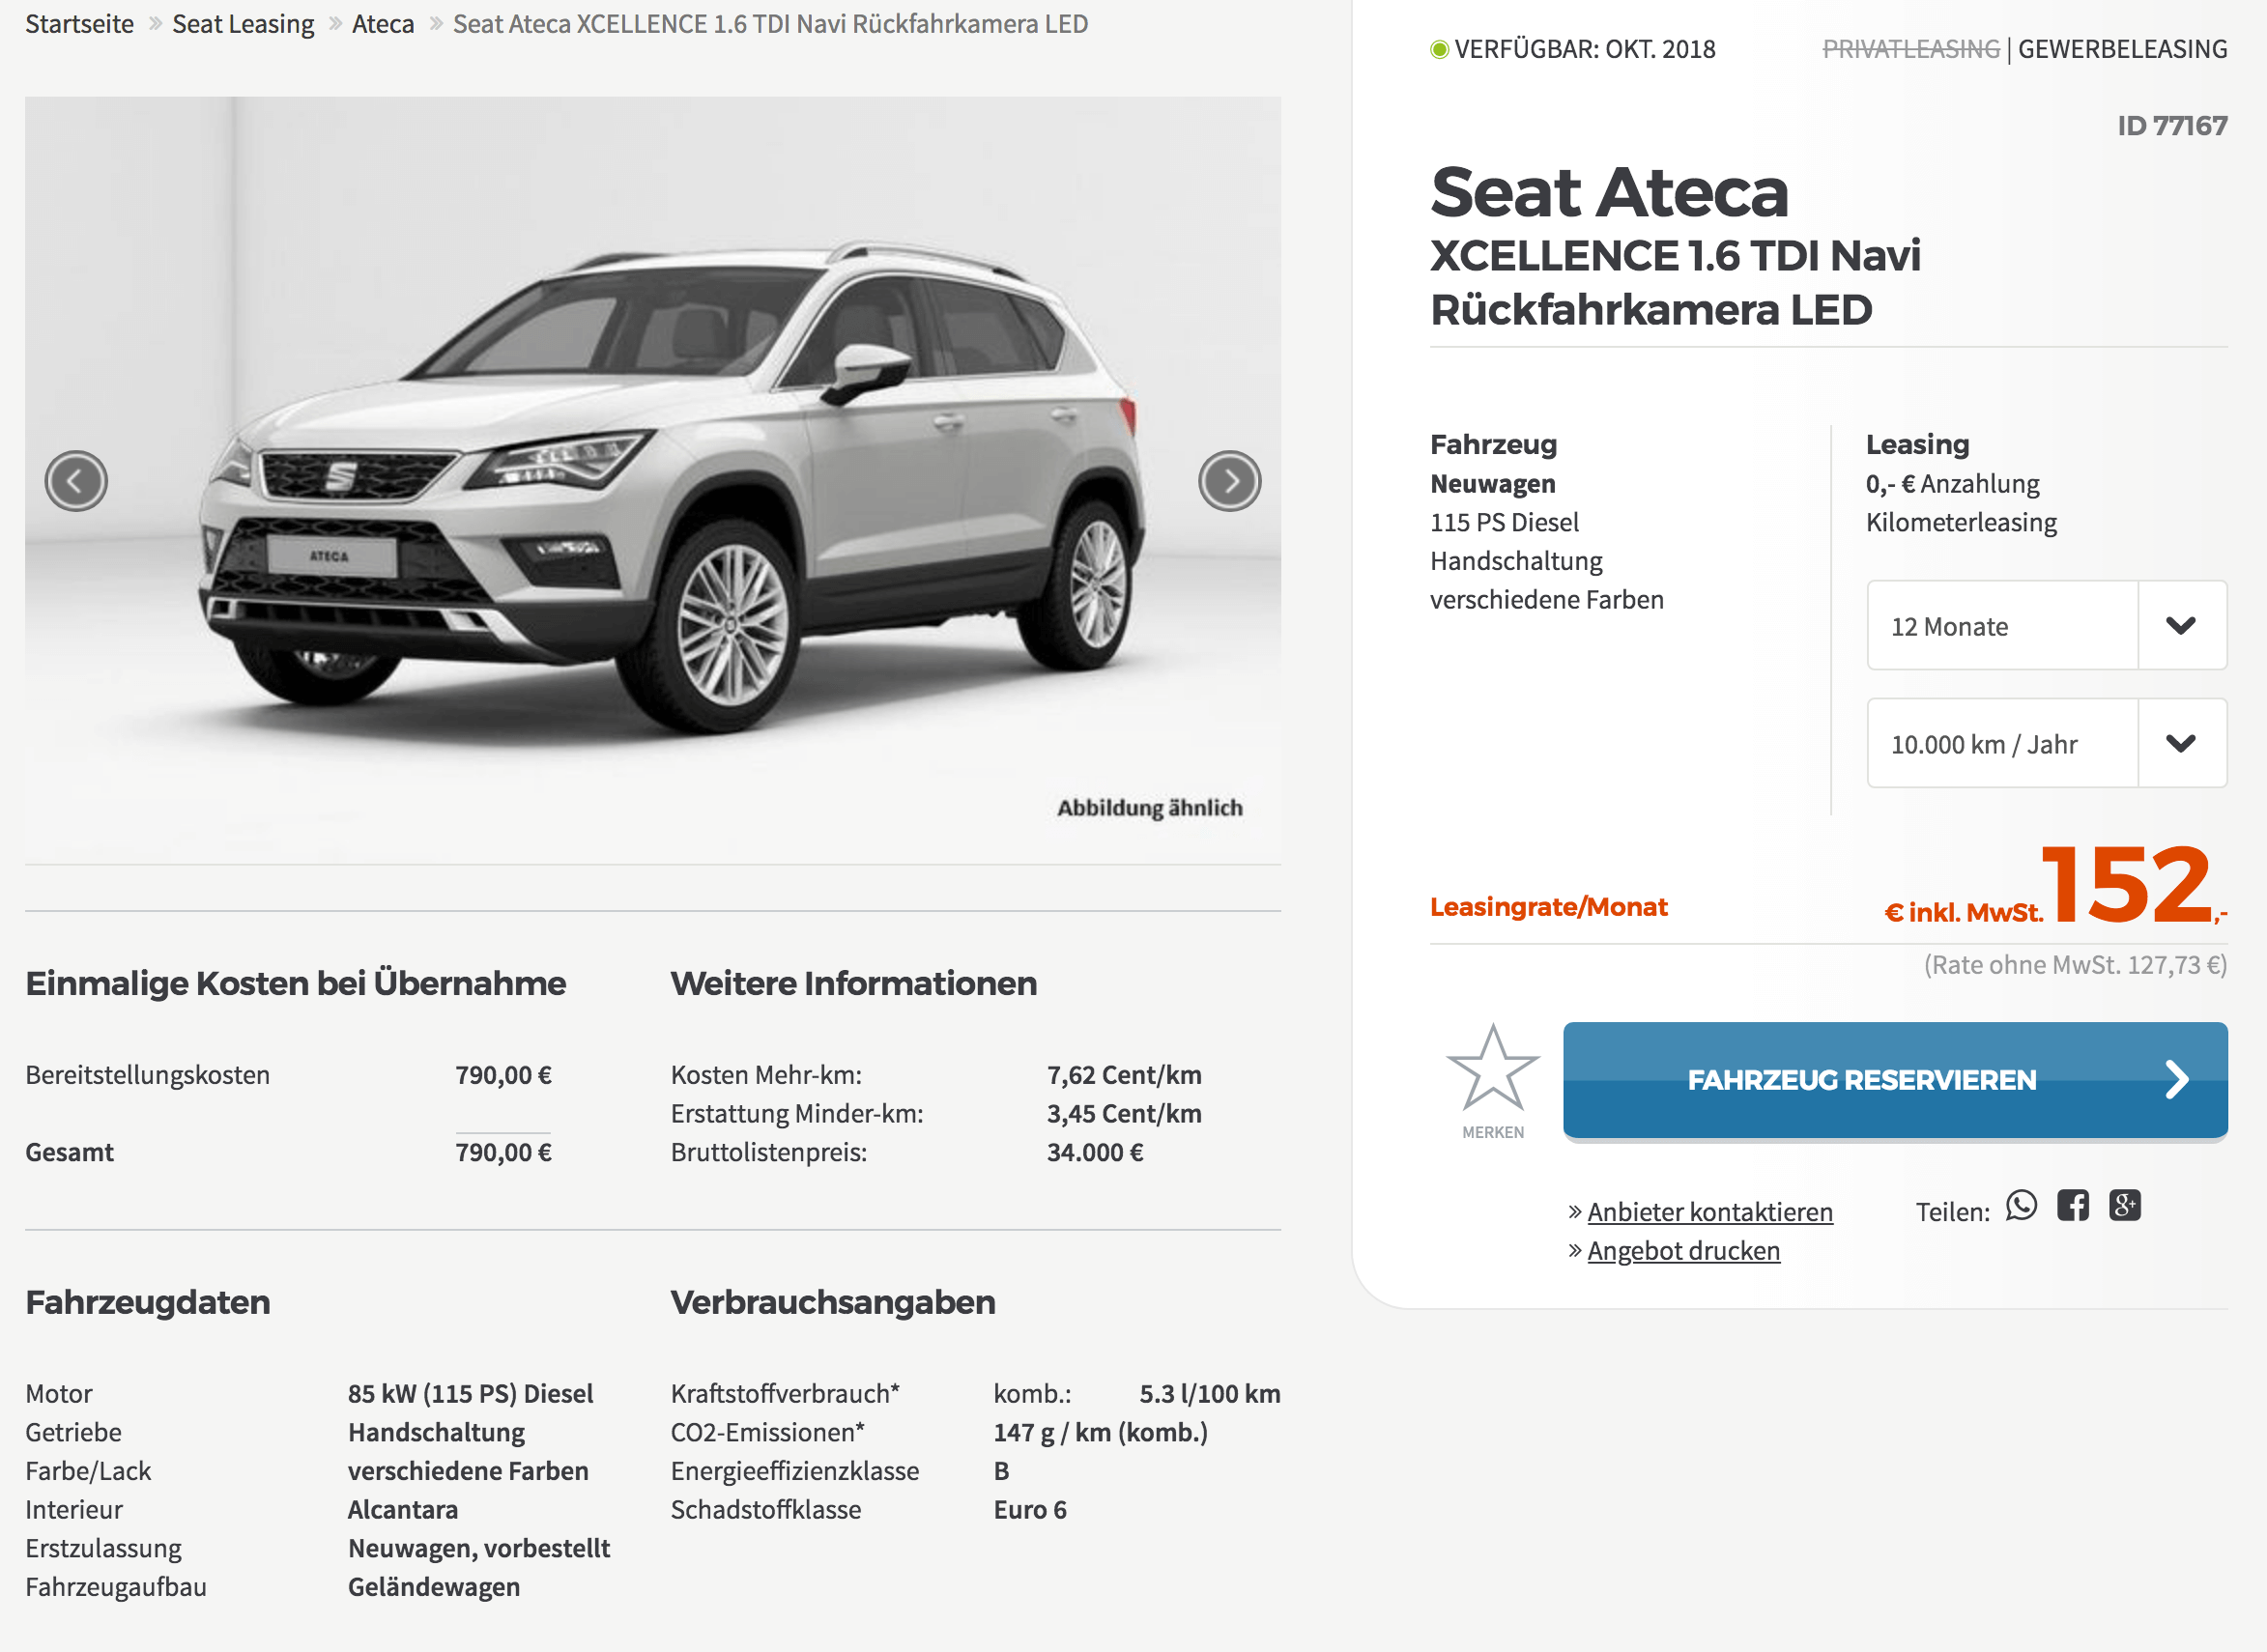 seat ateca xcellence leasing f r 128 euro im monat netto. Black Bedroom Furniture Sets. Home Design Ideas